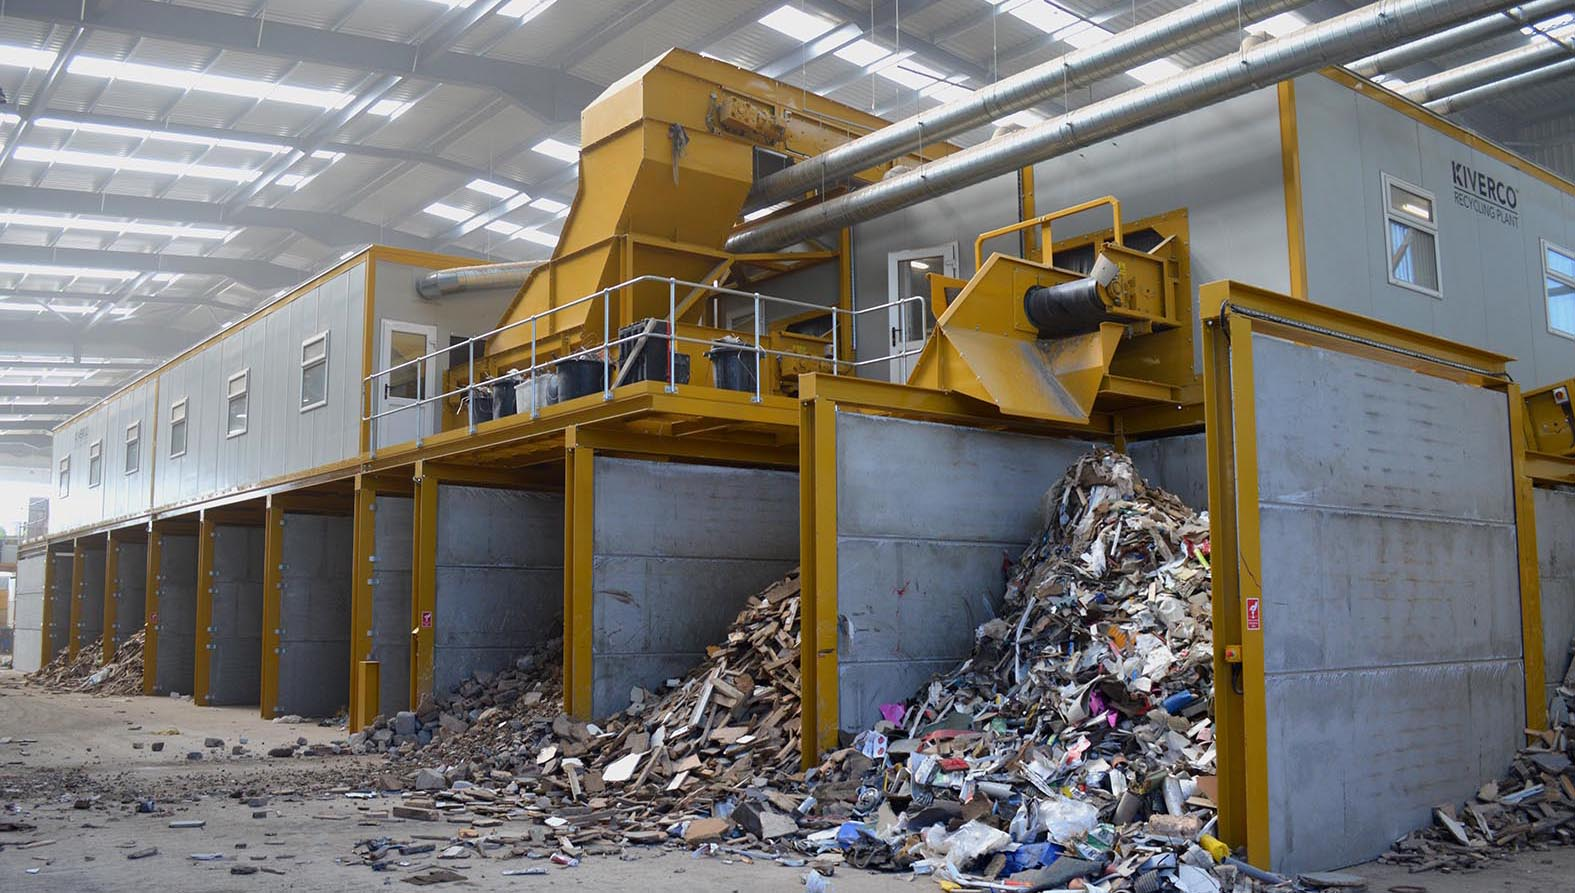 Construction Waste Processing Market Update: Key Business Segments Spiral Up Again